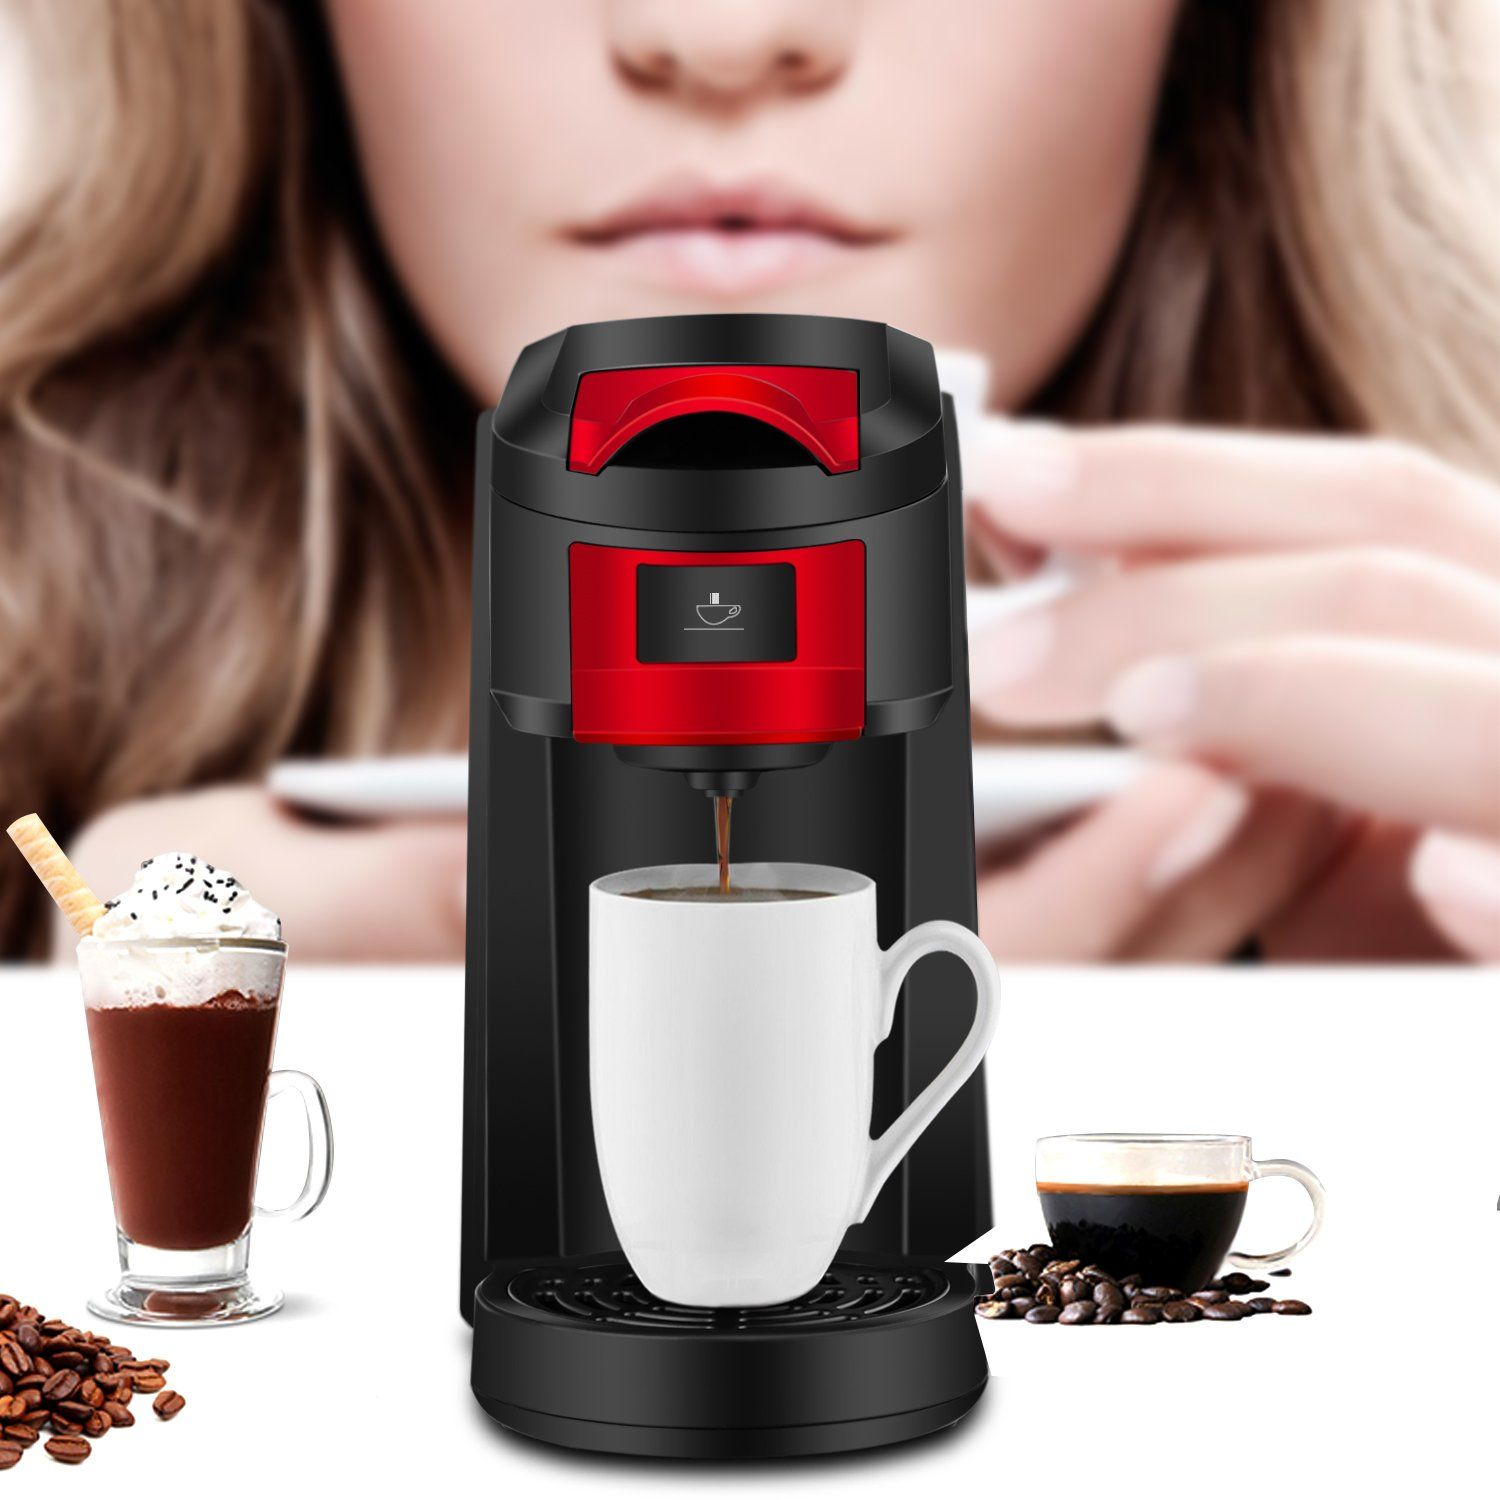 Espresso Machine Sowtech Cappuccino Steamer In 2020 Cappuccino Machine Espresso Coffee Machine Espresso Machine